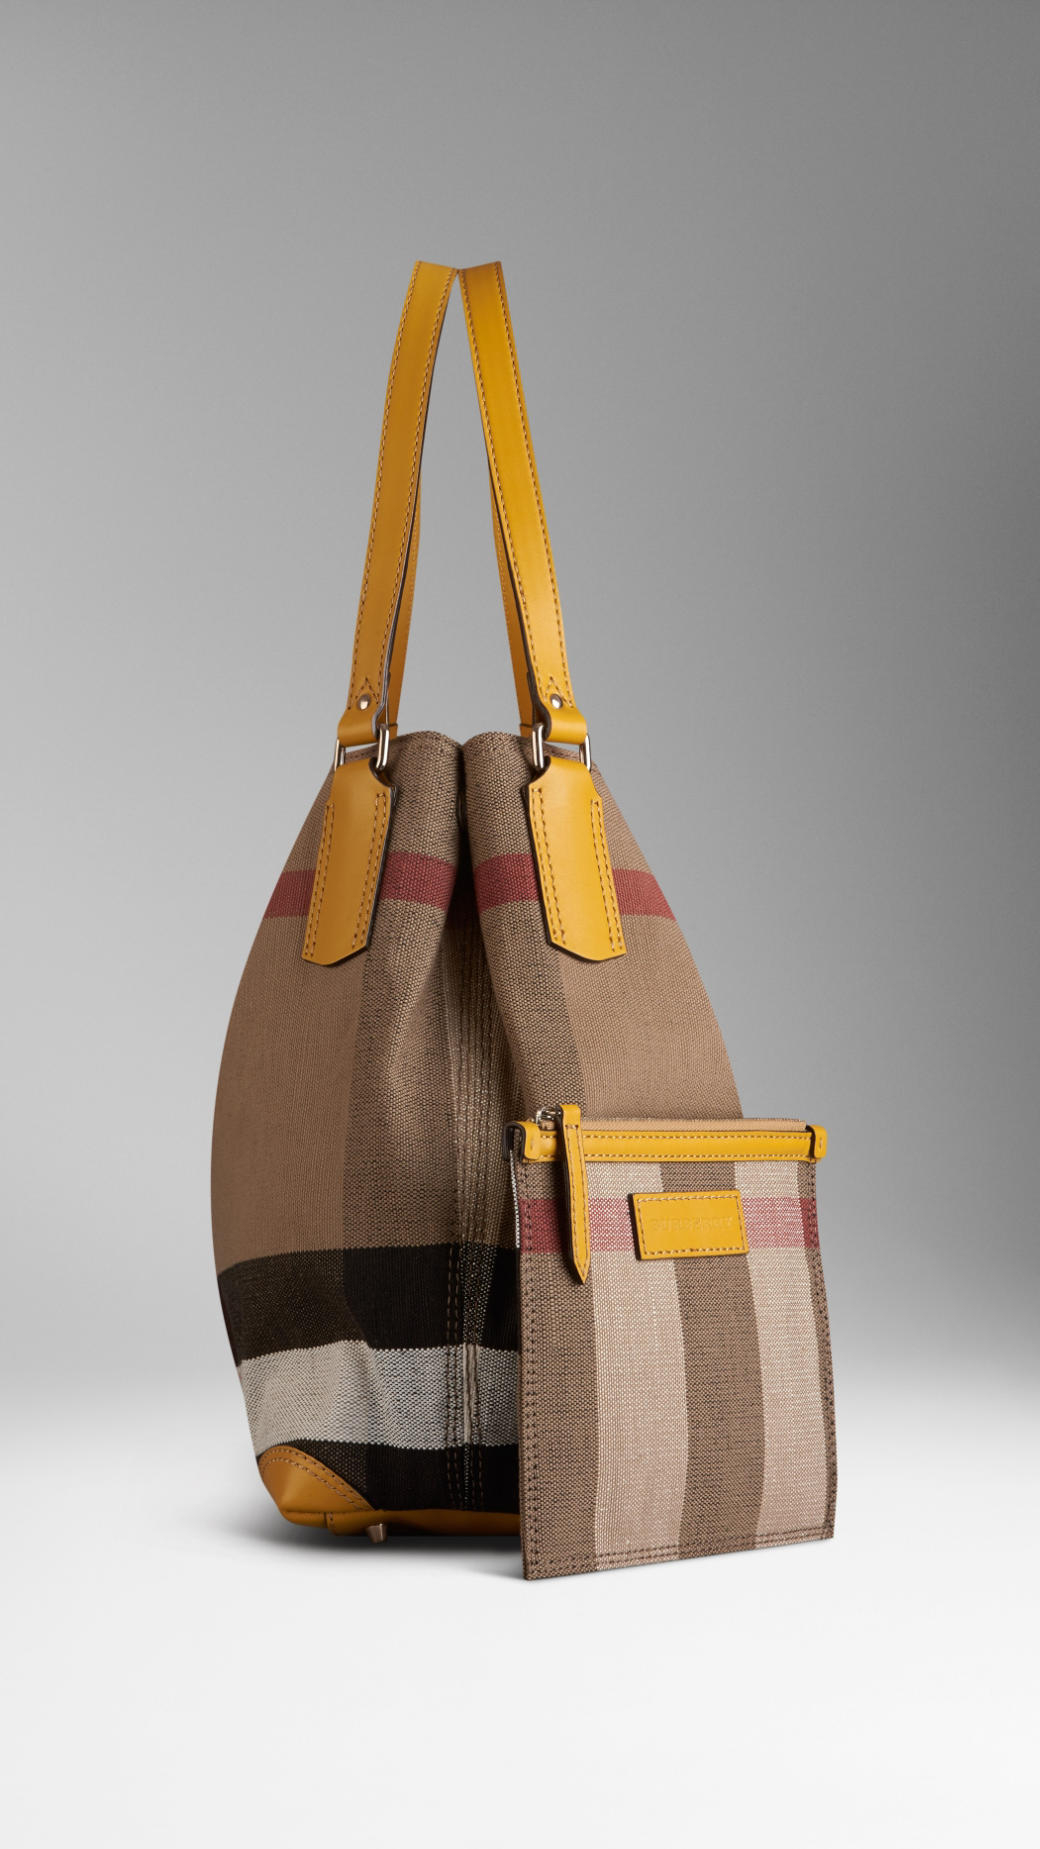 Burberry Medium Canvas Check Tote Bag in Yellow